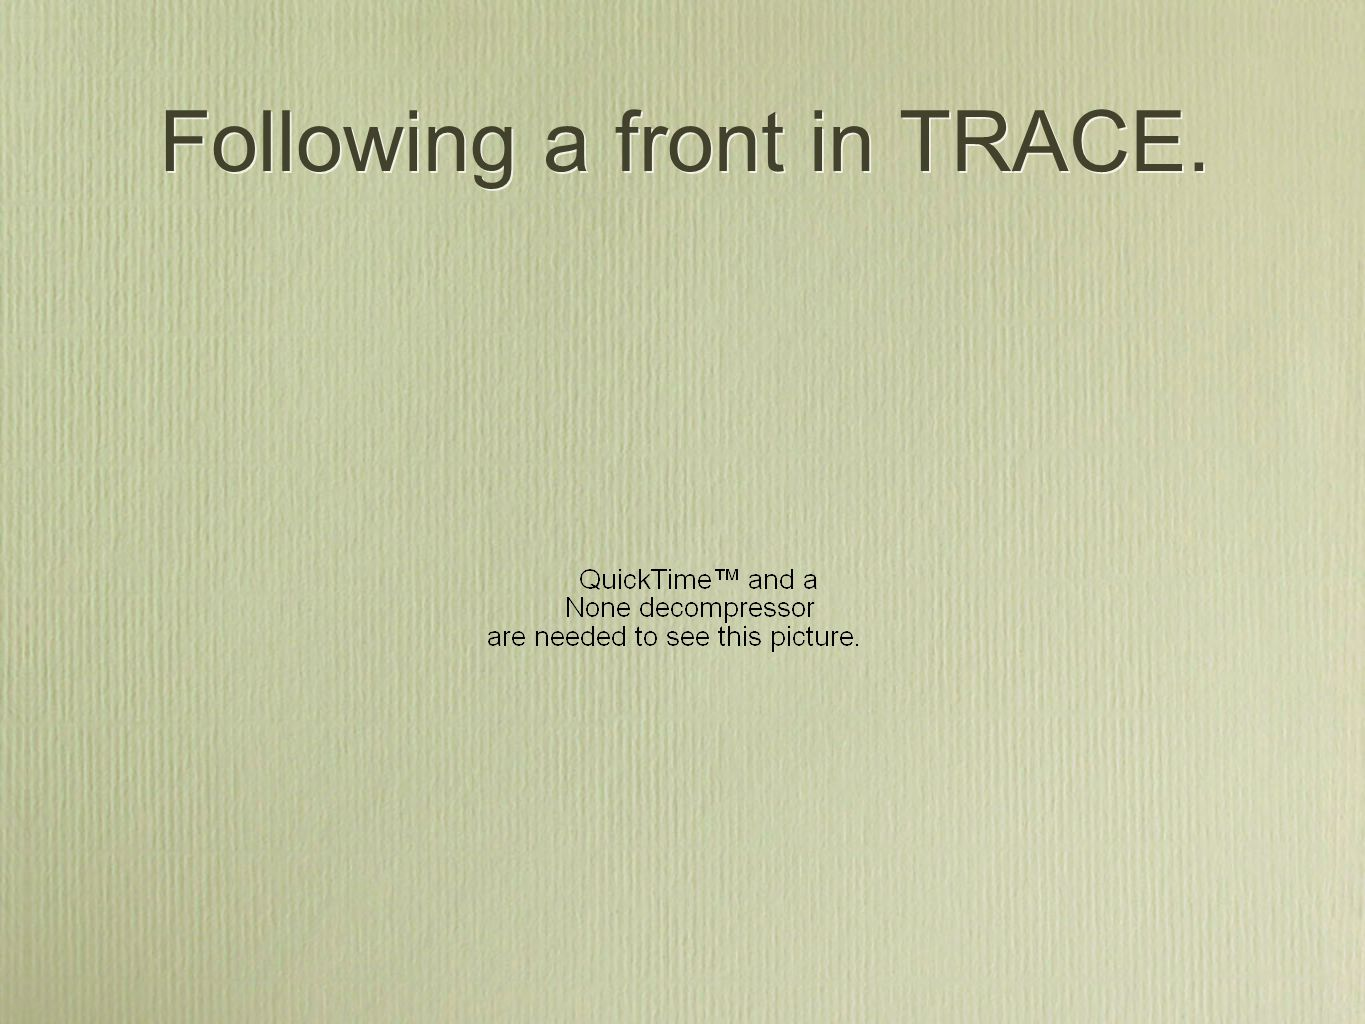 Following a front in TRACE.